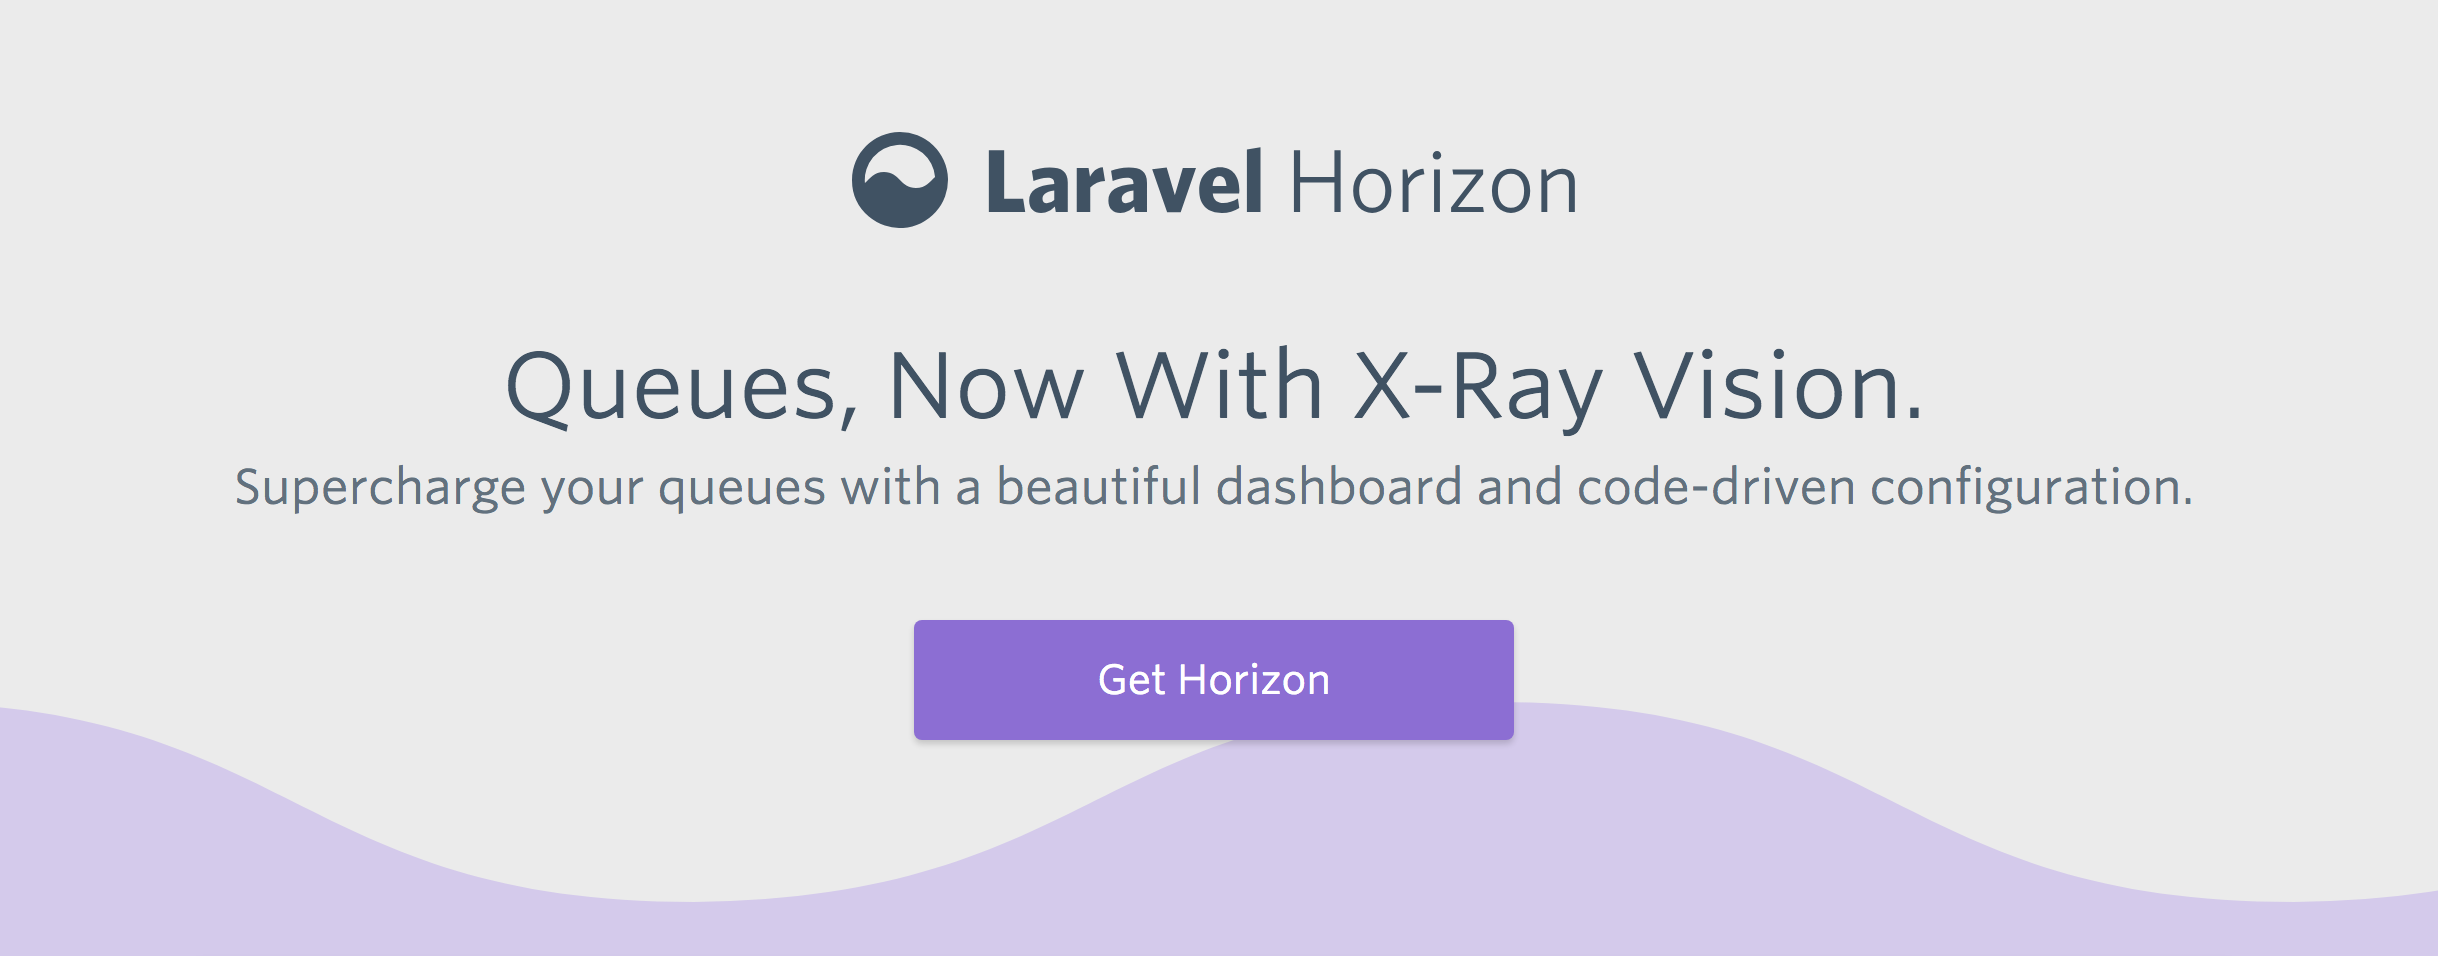 Horizon Sales Pitch Introducing Laravel Horizon - a Dashboard for your Queues - horizon sales pitch - Introducing Laravel Horizon – a Dashboard for your Queues